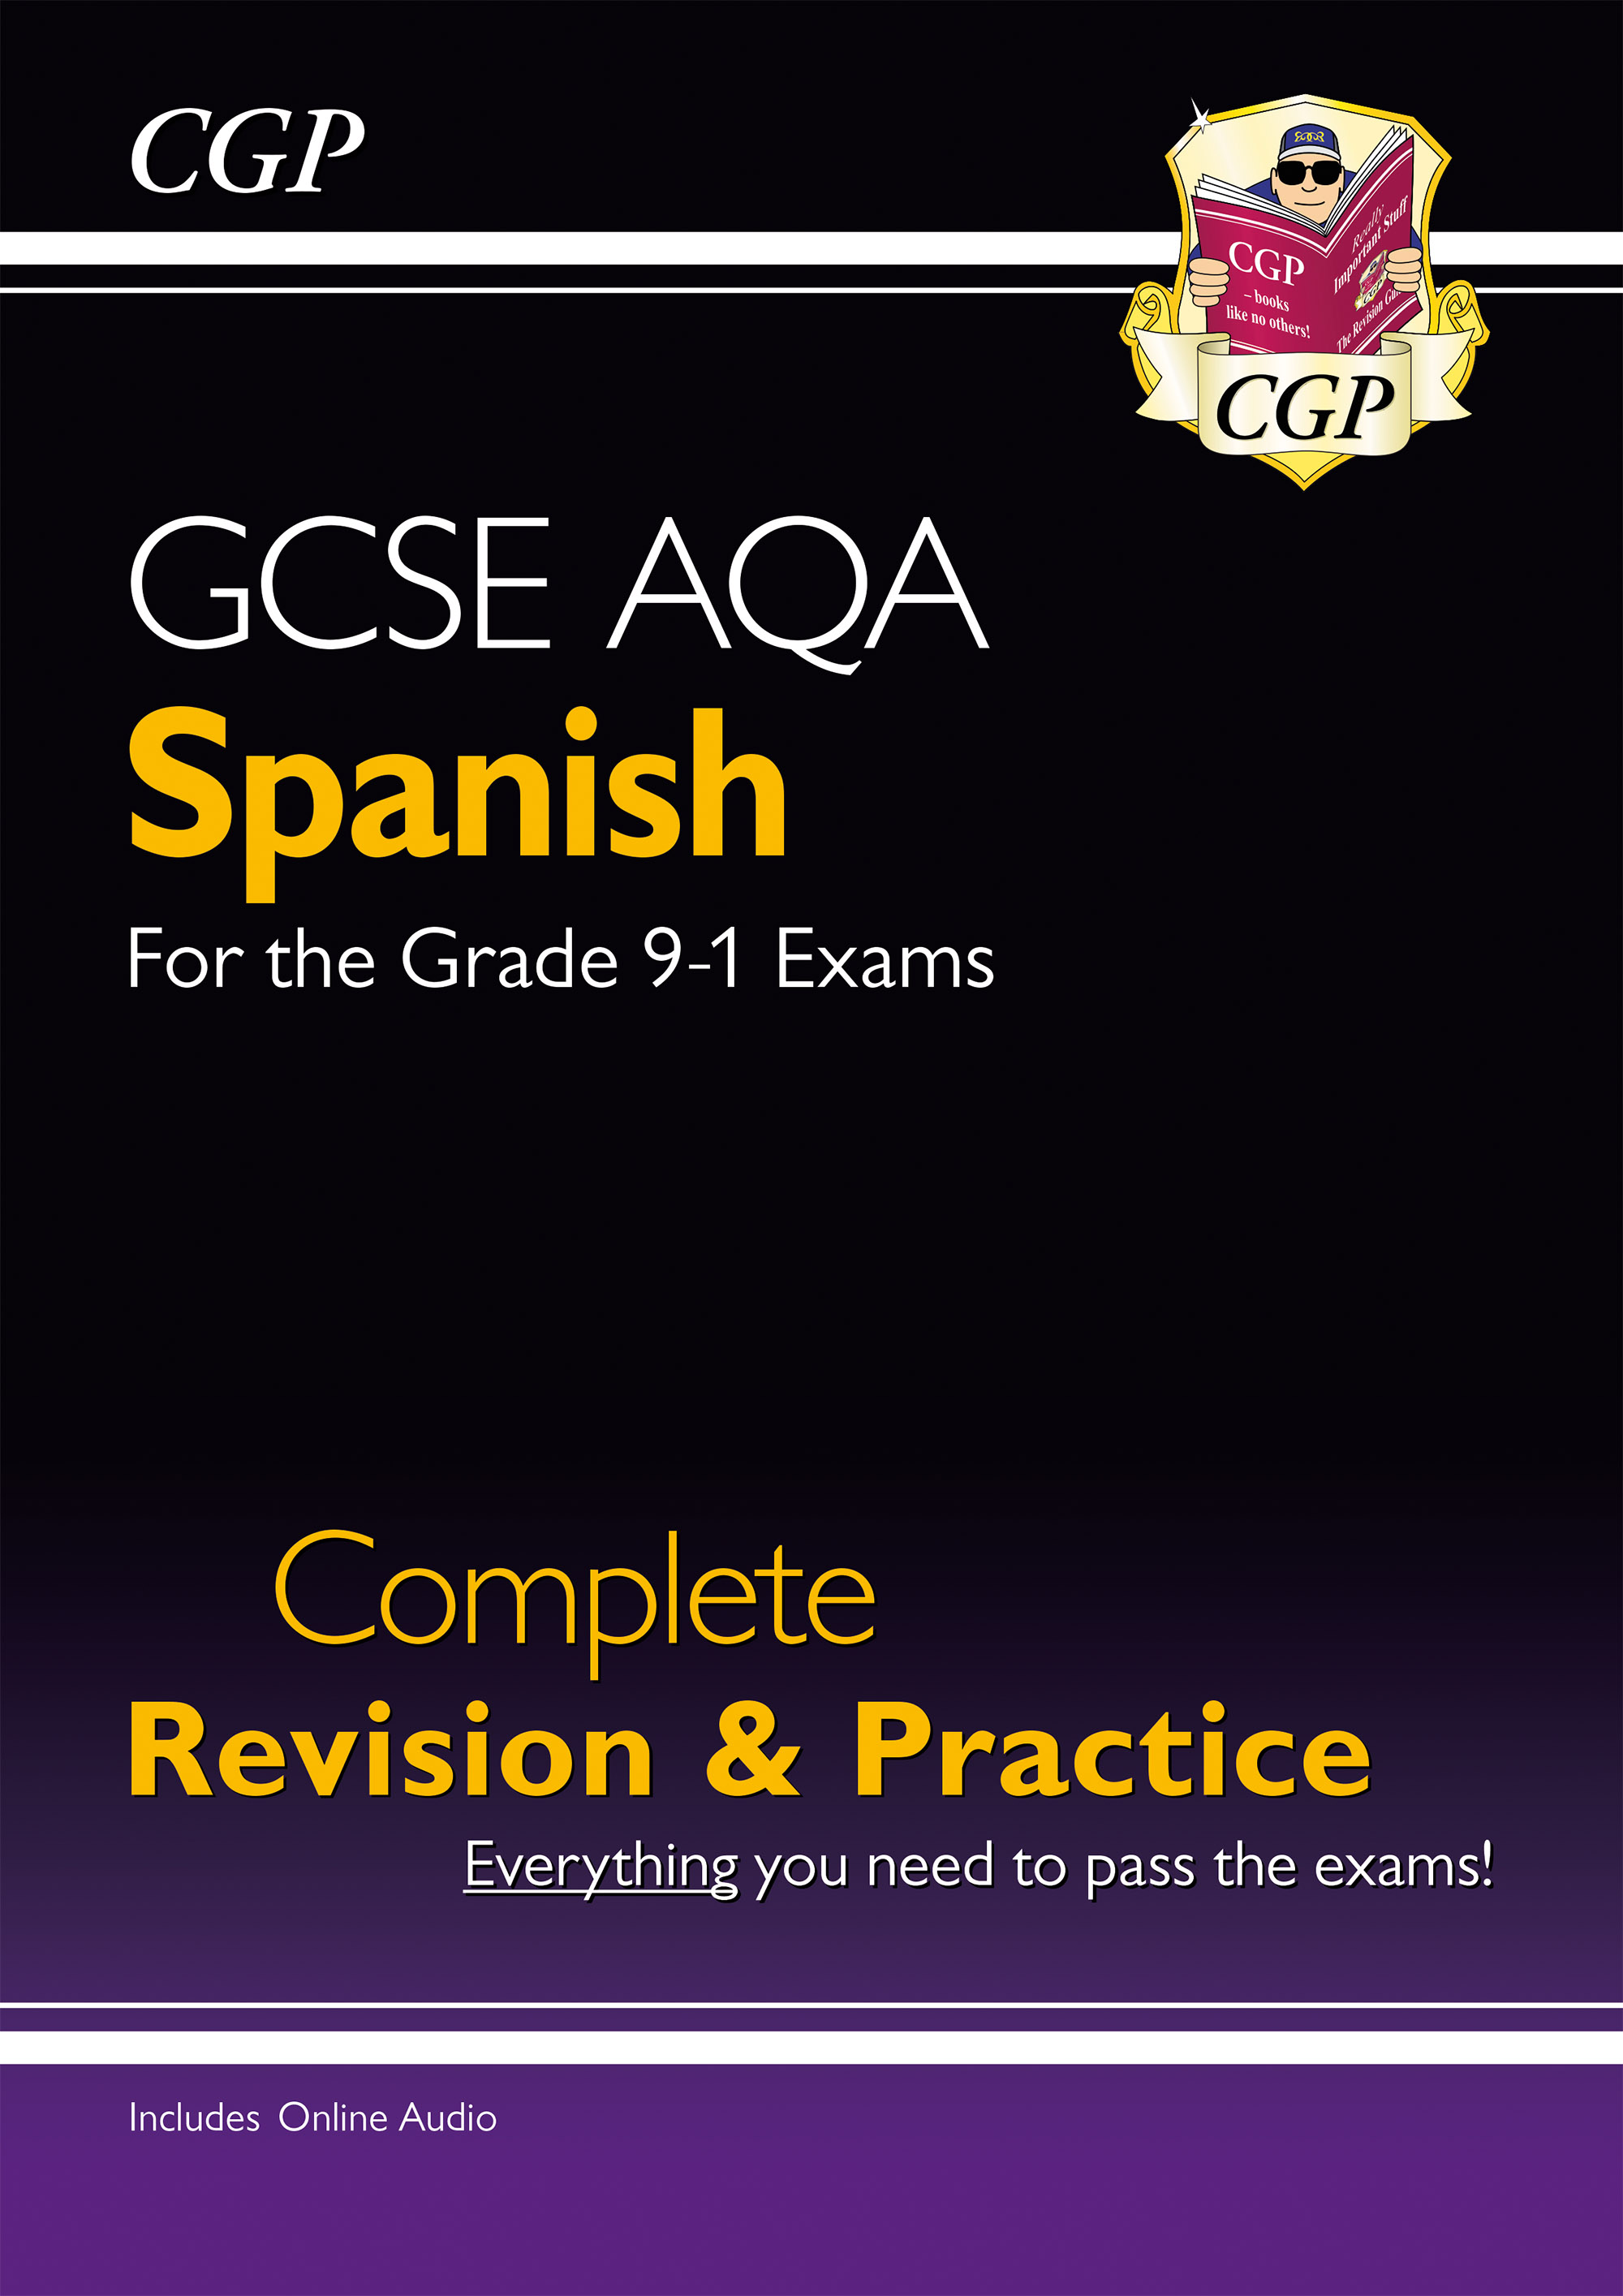 SPAS41DK - New GCSE Spanish AQA Complete Revision & Practice - Grade 9-1 Course